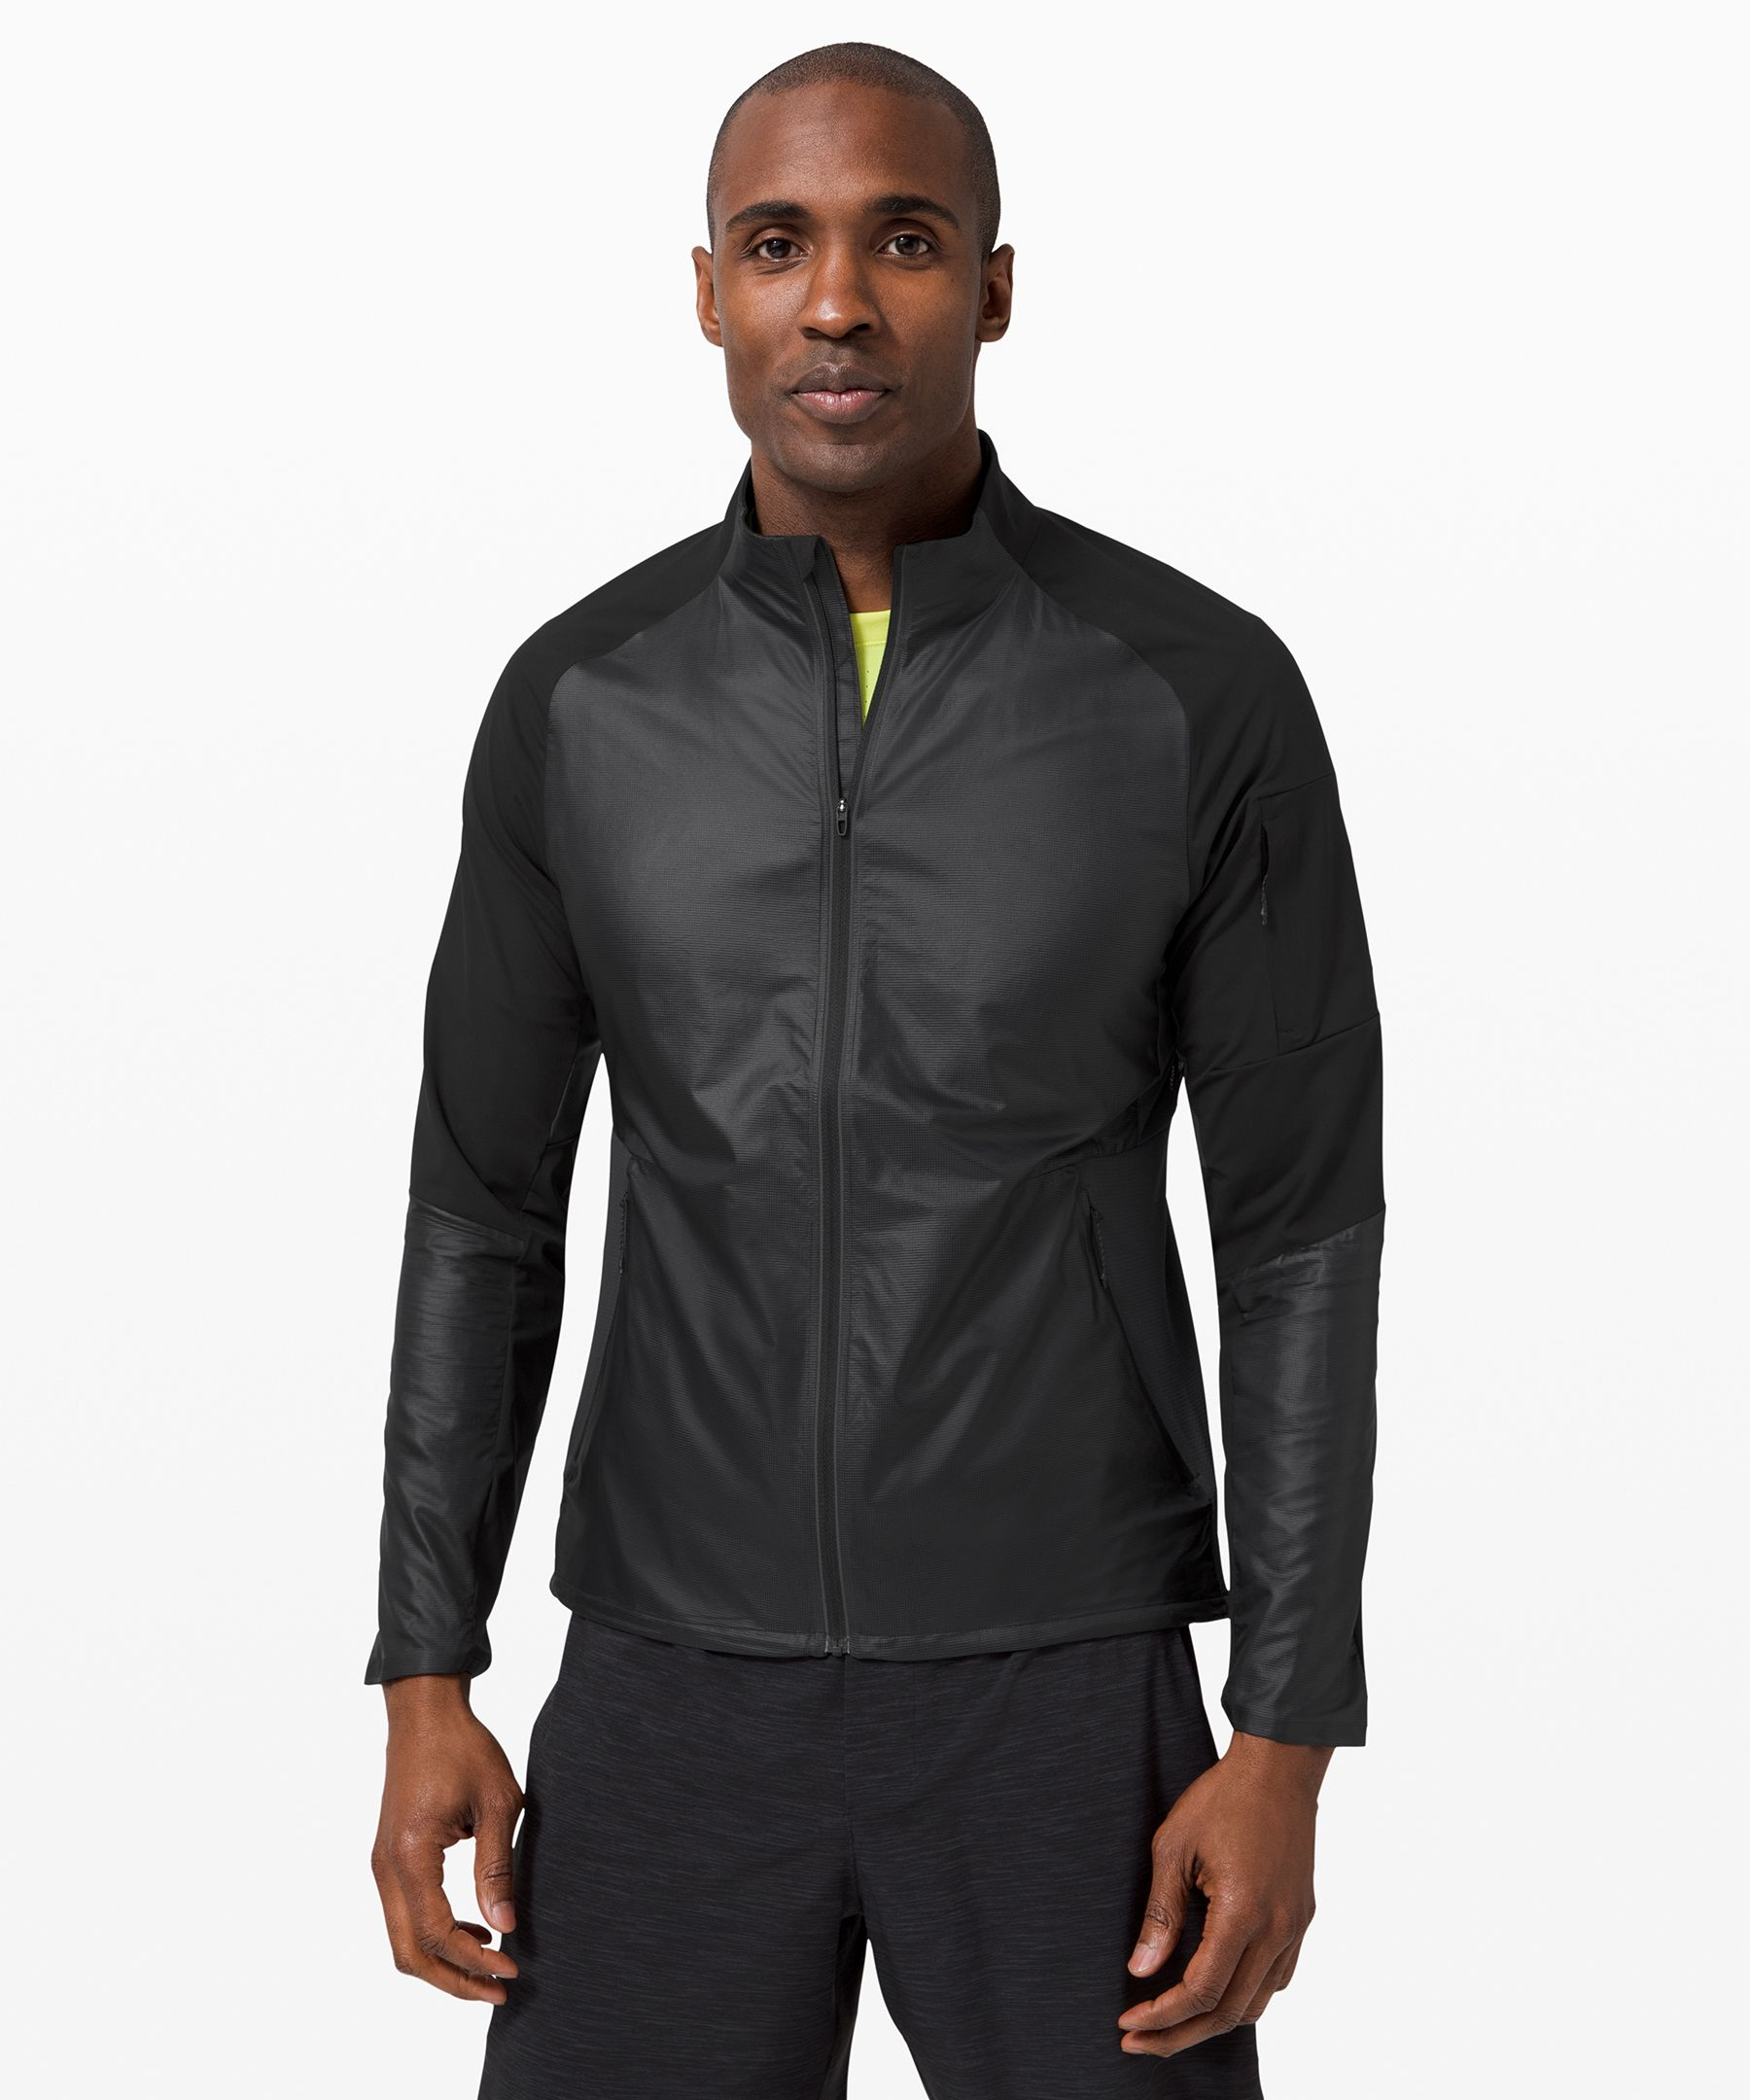 Power through your last mile  with nothing holding you back.  Designed to be your optimum  running shell with a fit  that\'s made to move, this  jacket is made from  water-repellent fabric on the  front to protect your core,  and a Mesh fabric back to let  your body breathe.